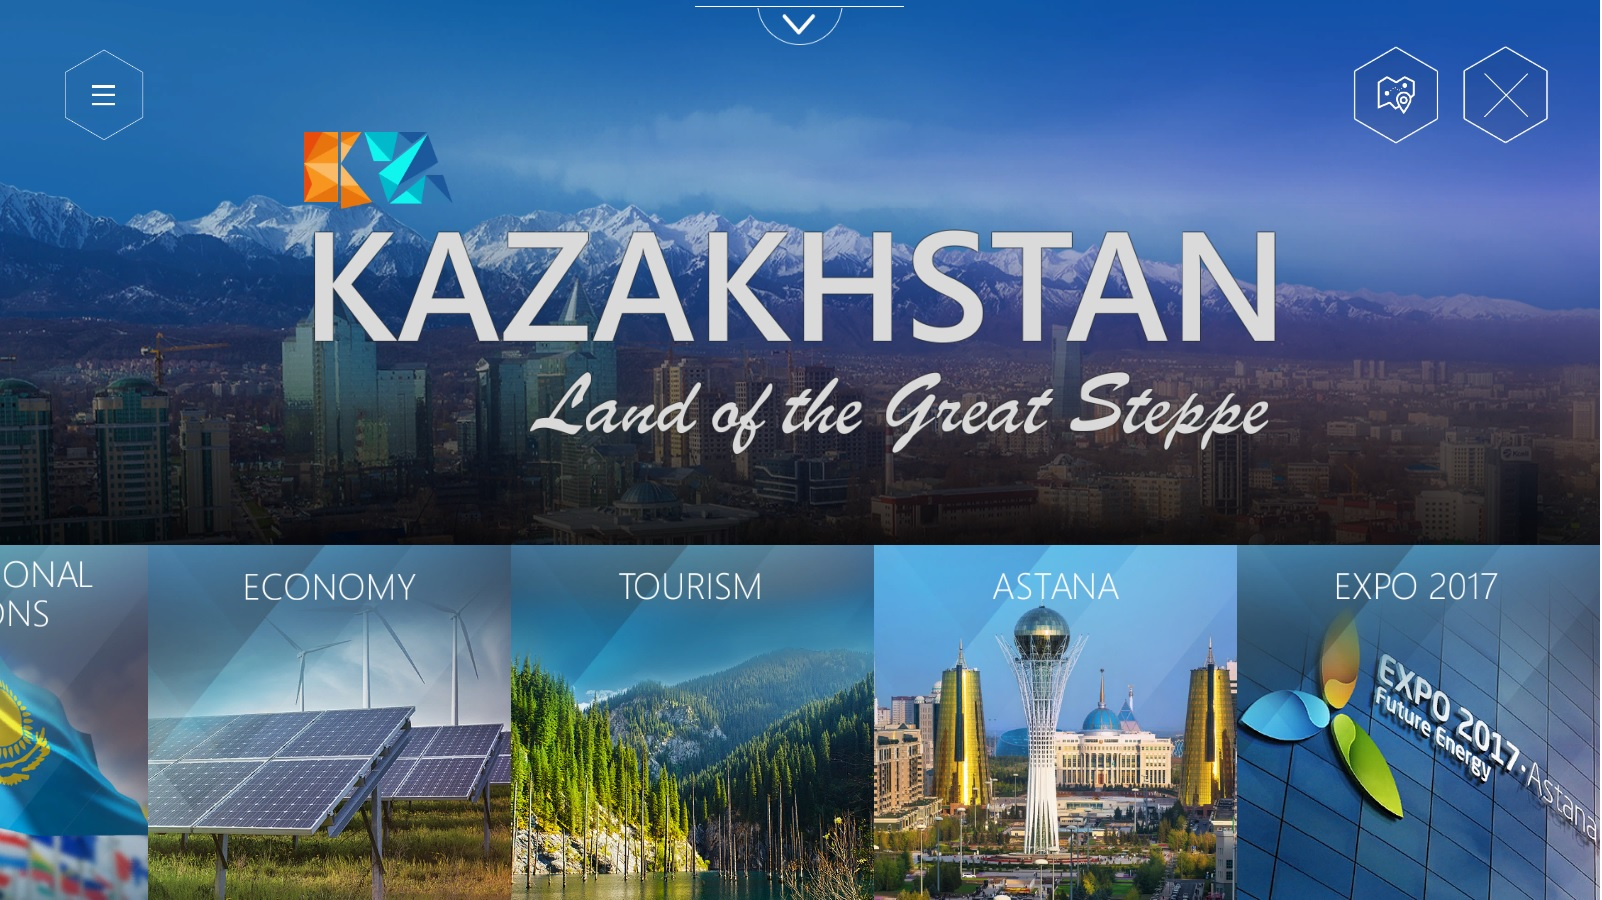 country profile former soviet union republic member kazakhstan 9th largest country in the world